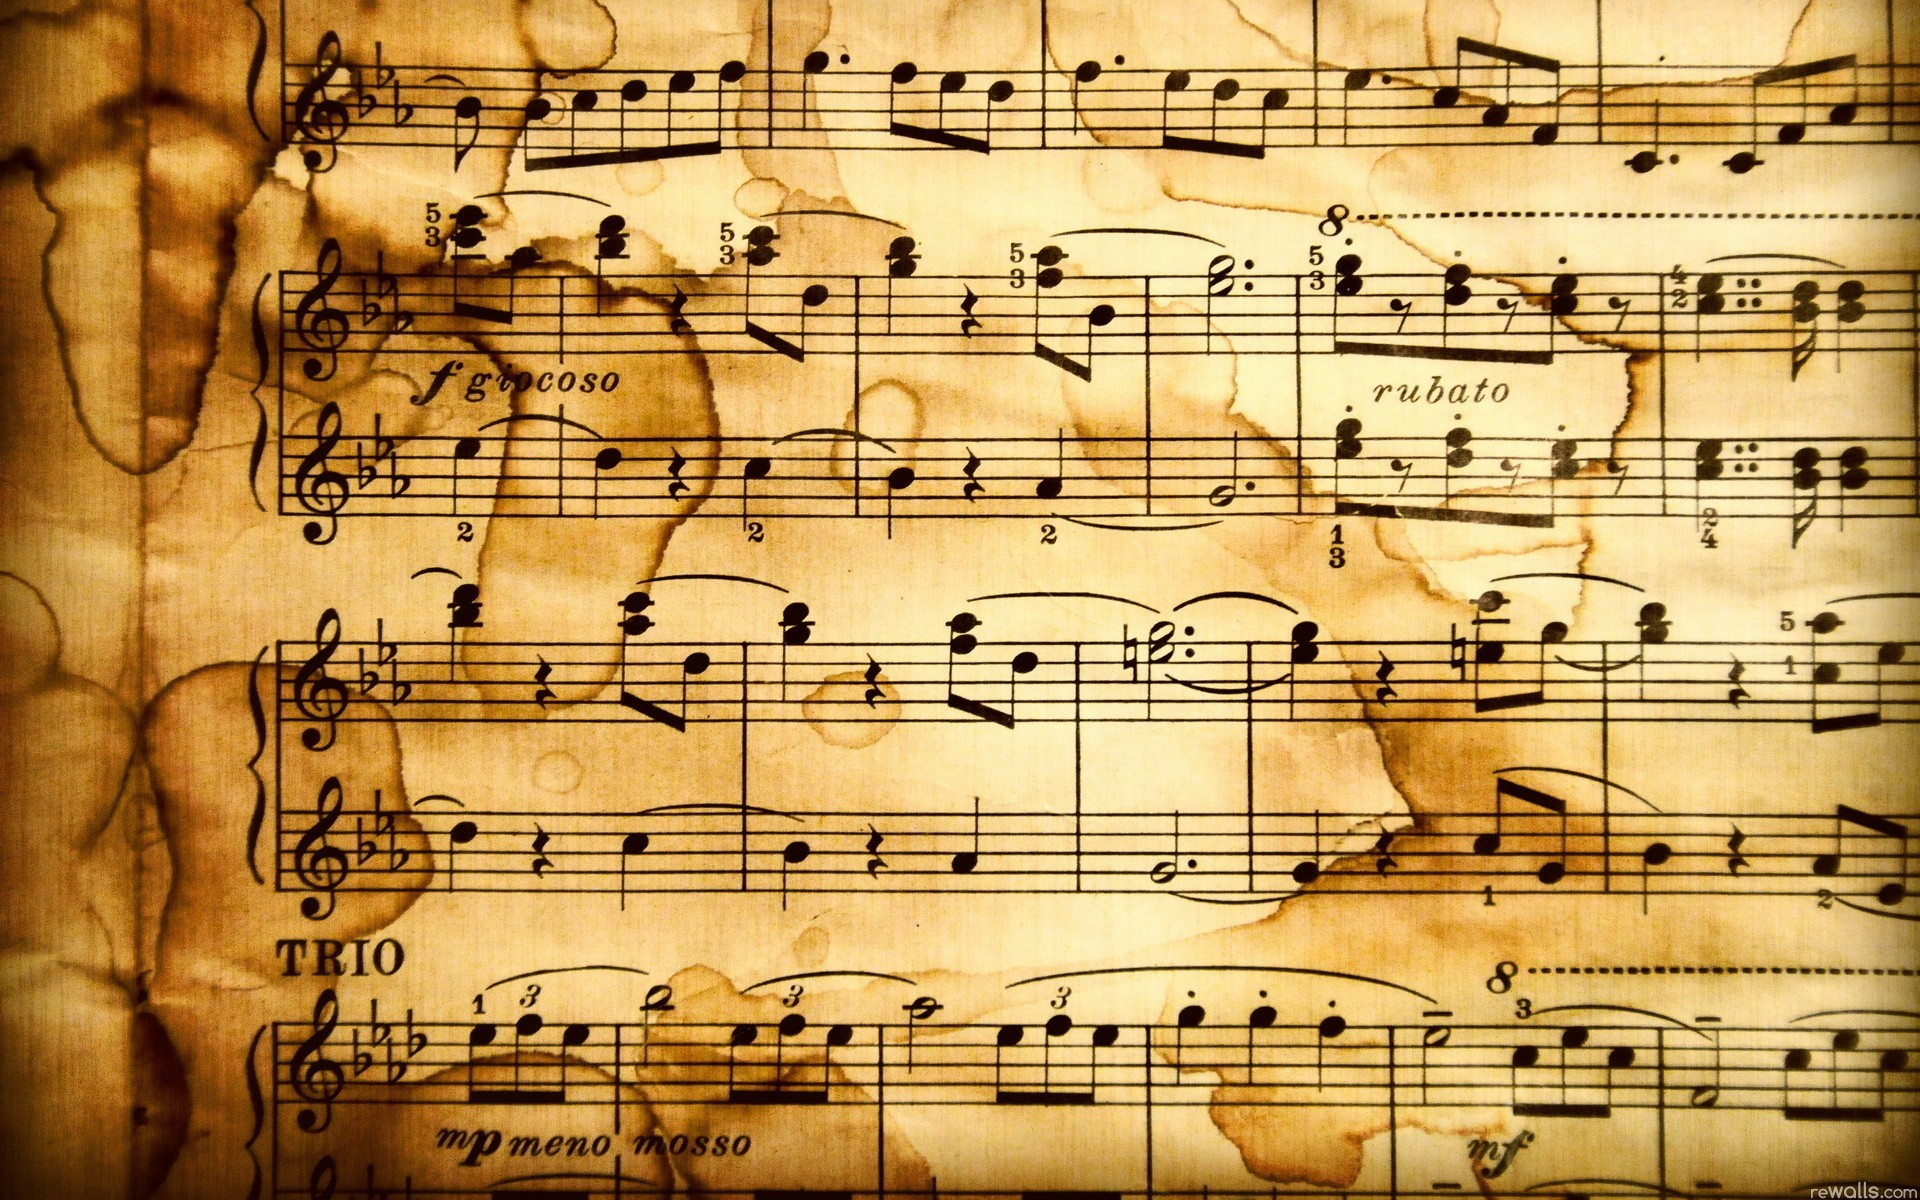 images (6) music-notes-wallpaper